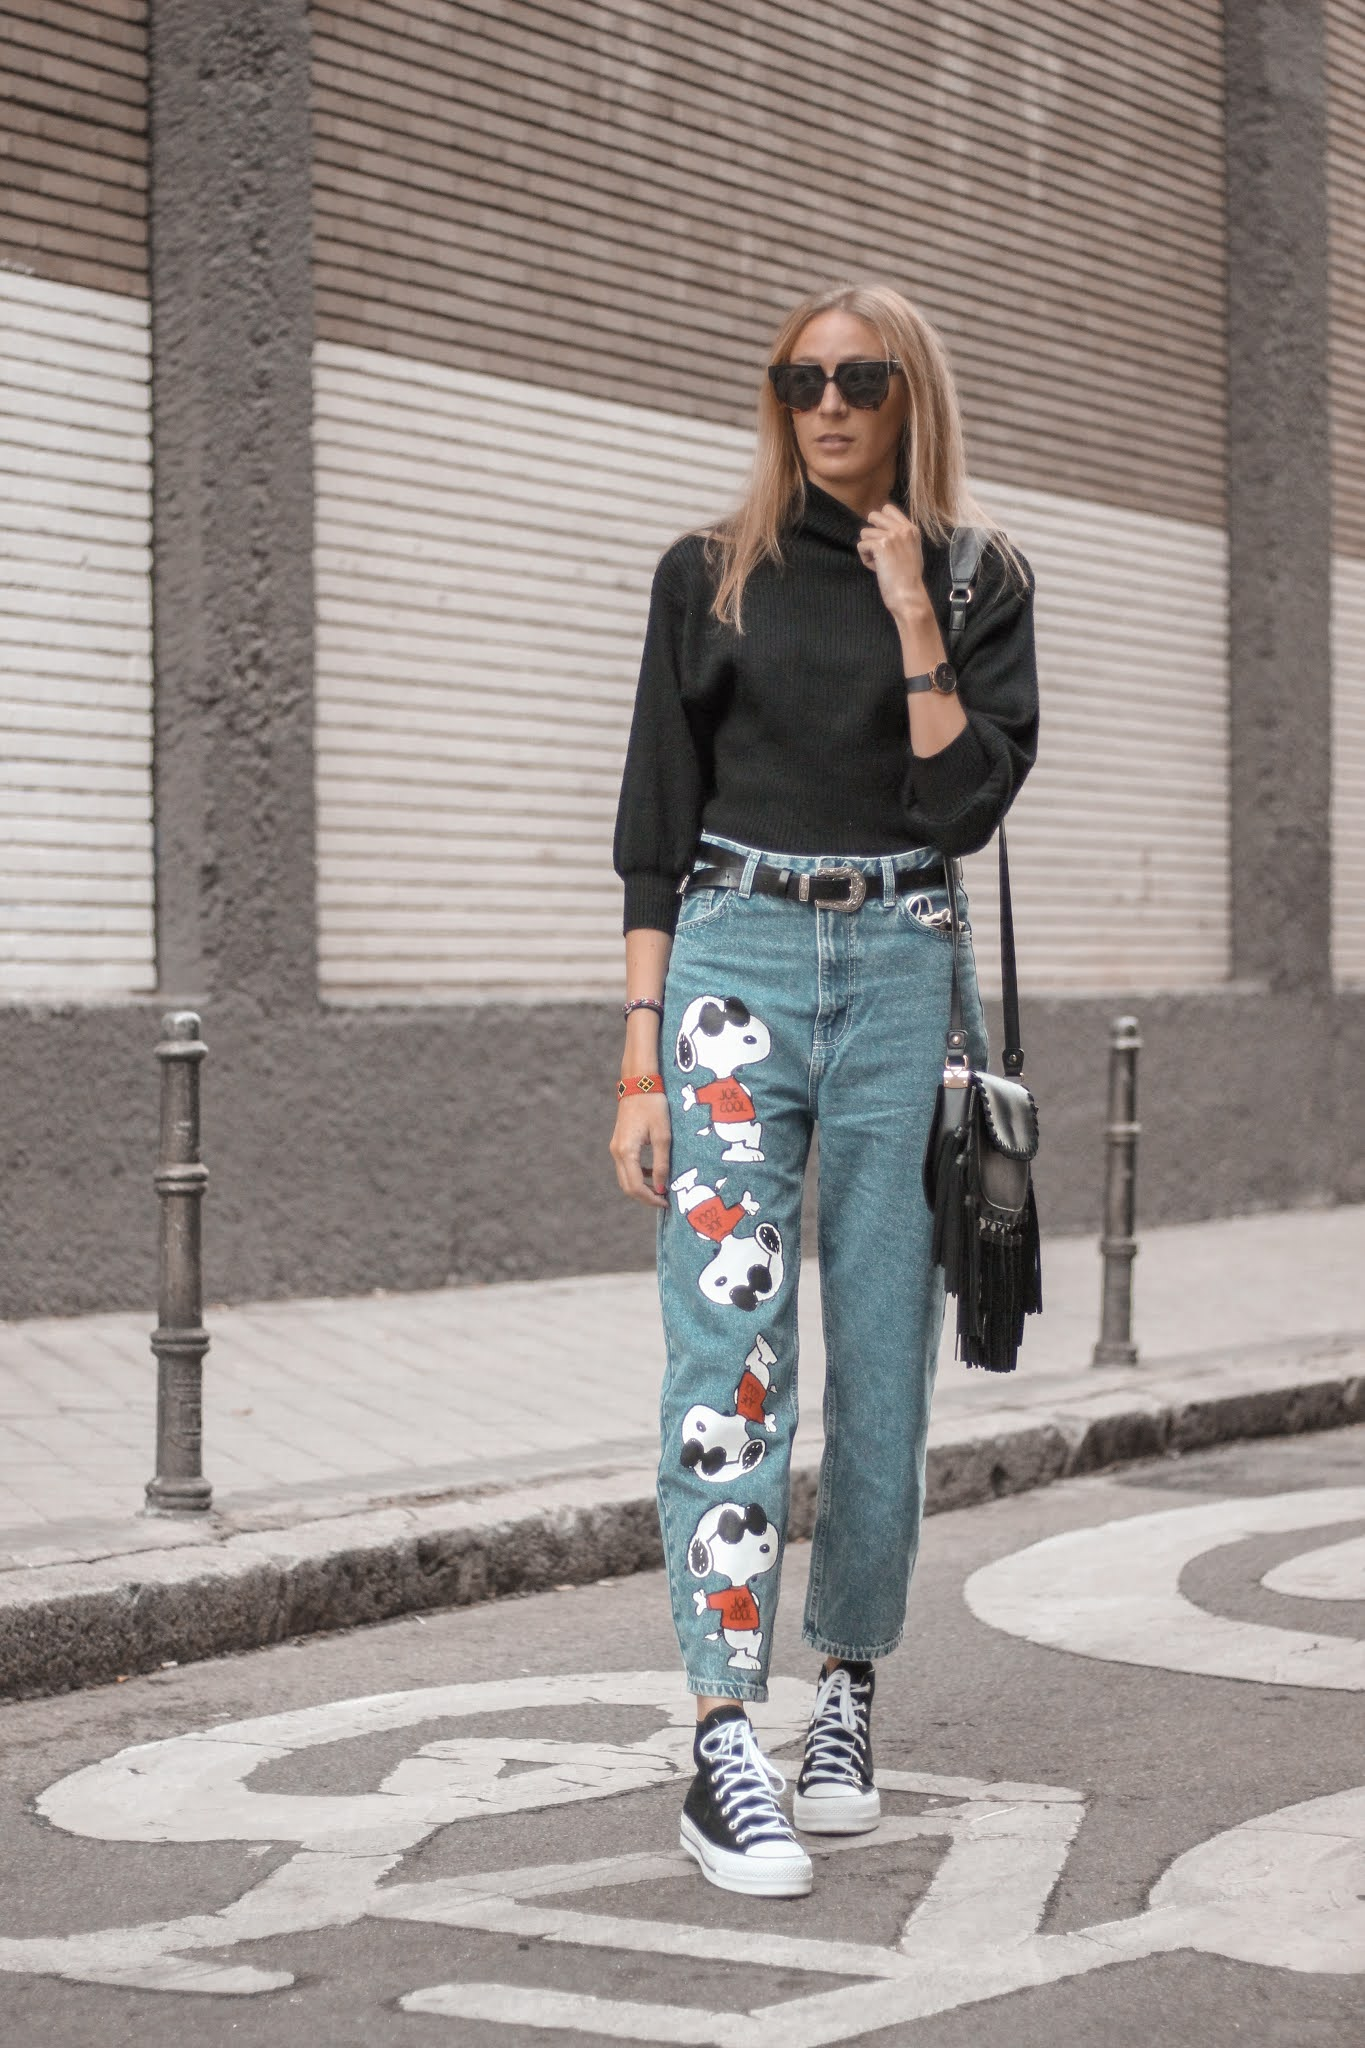 snoopy-mom-jeans-bershka-black-turtle-neck